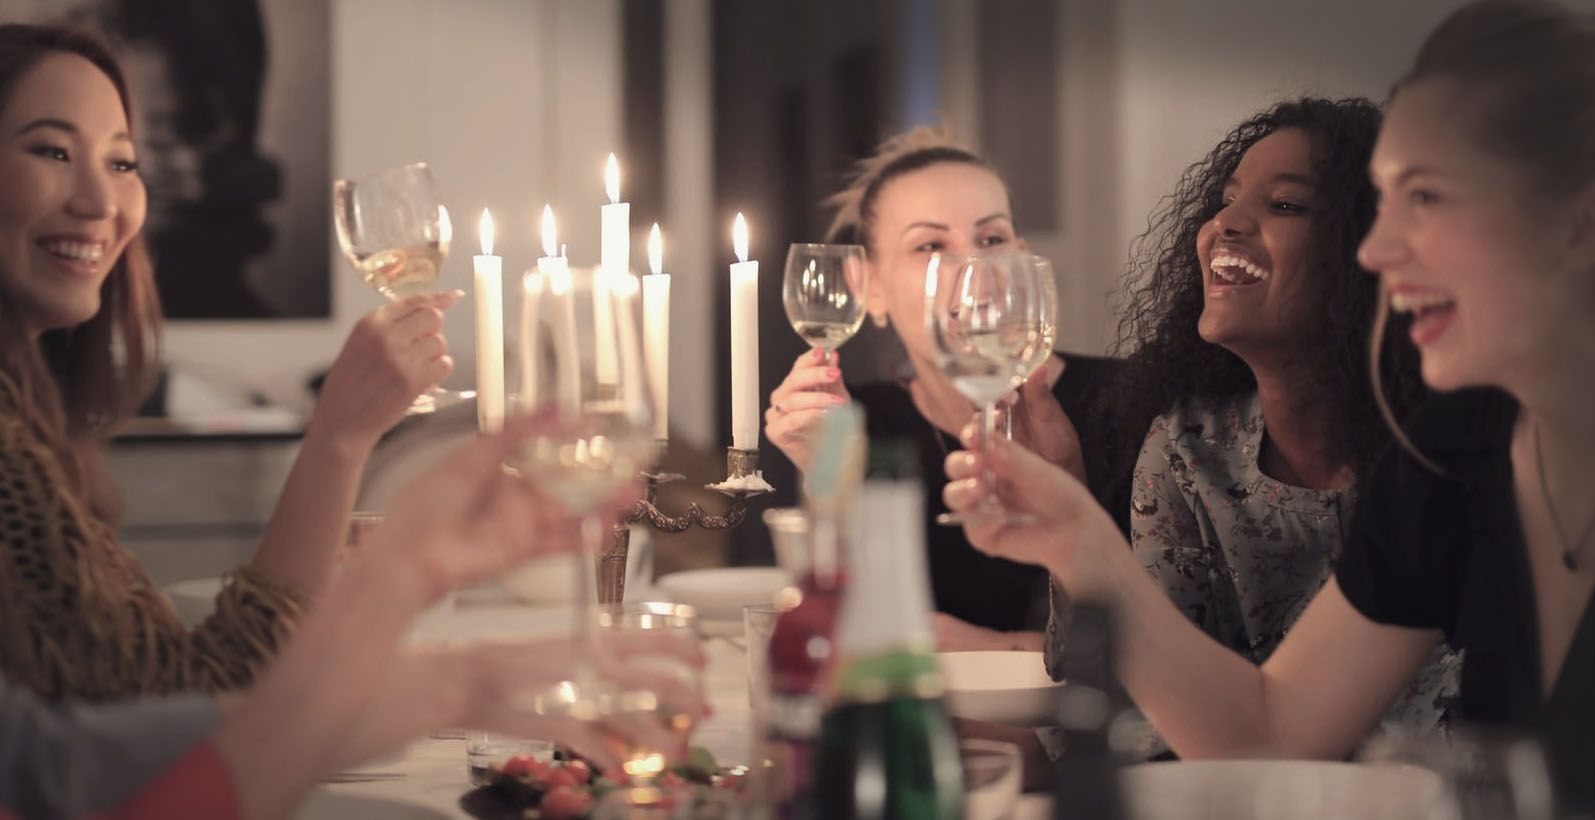 friends tasting wine at home